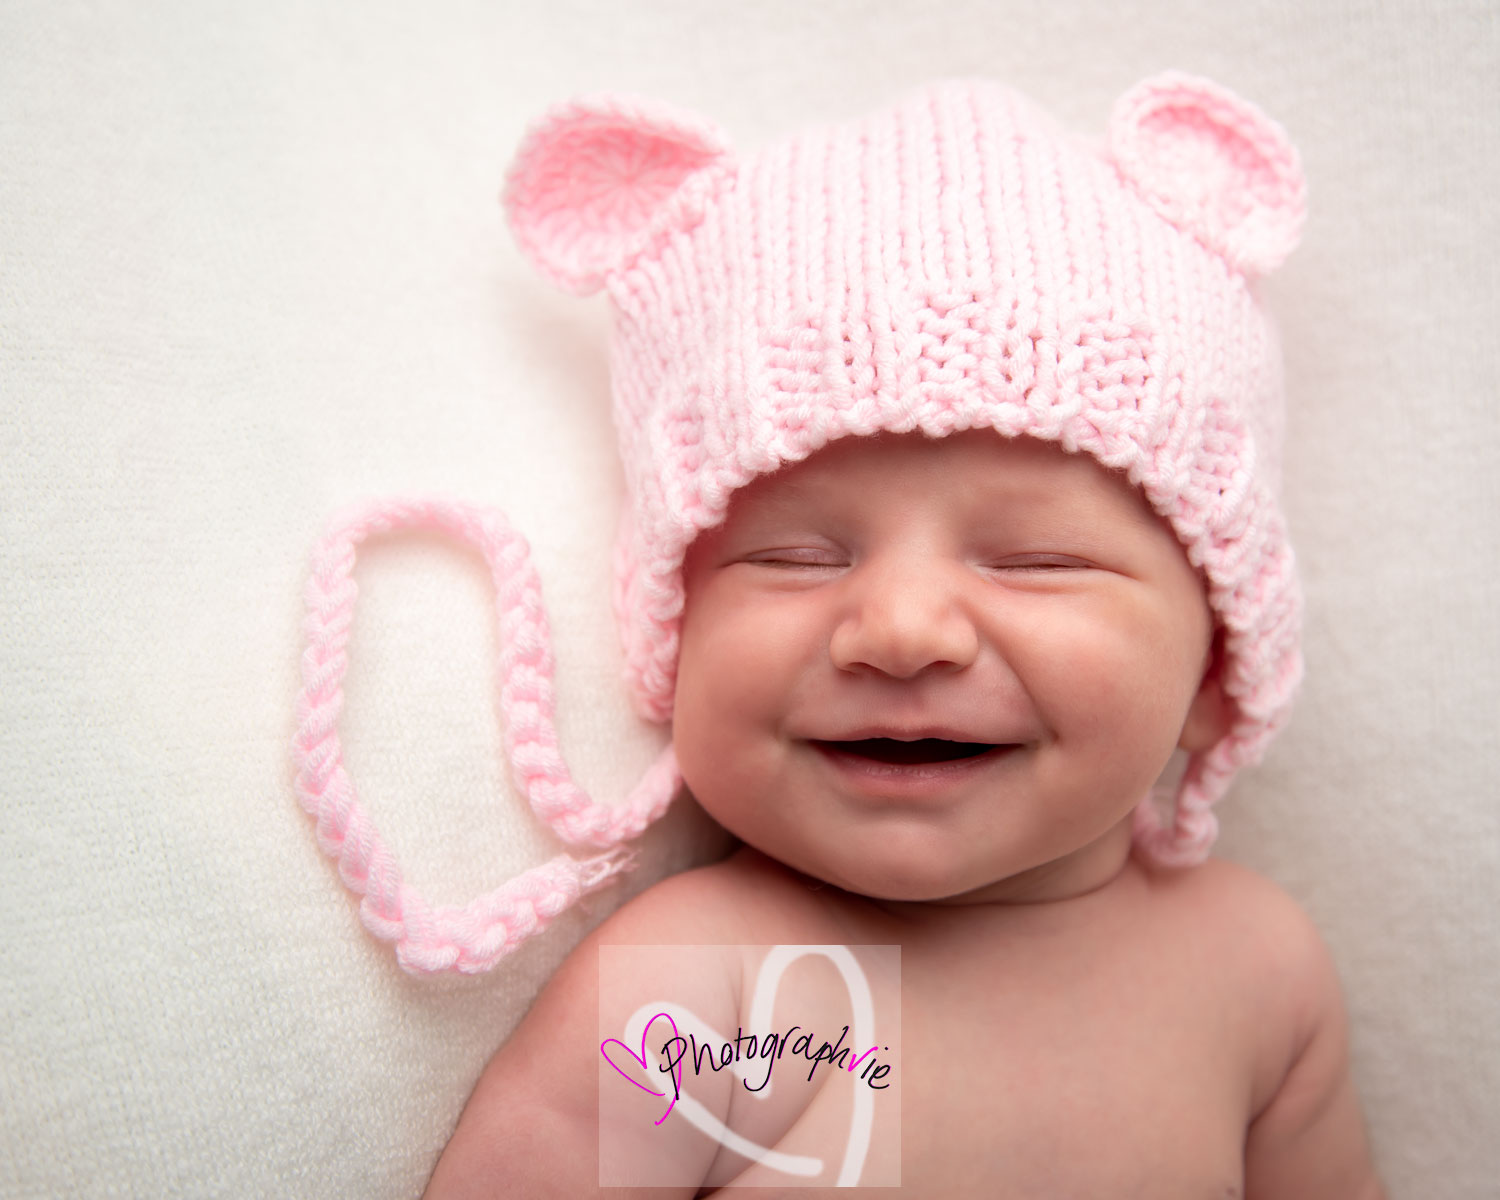 baby photoshoot newborn smiling in their sleep wearing pink hat baby smiles ely photoshoot